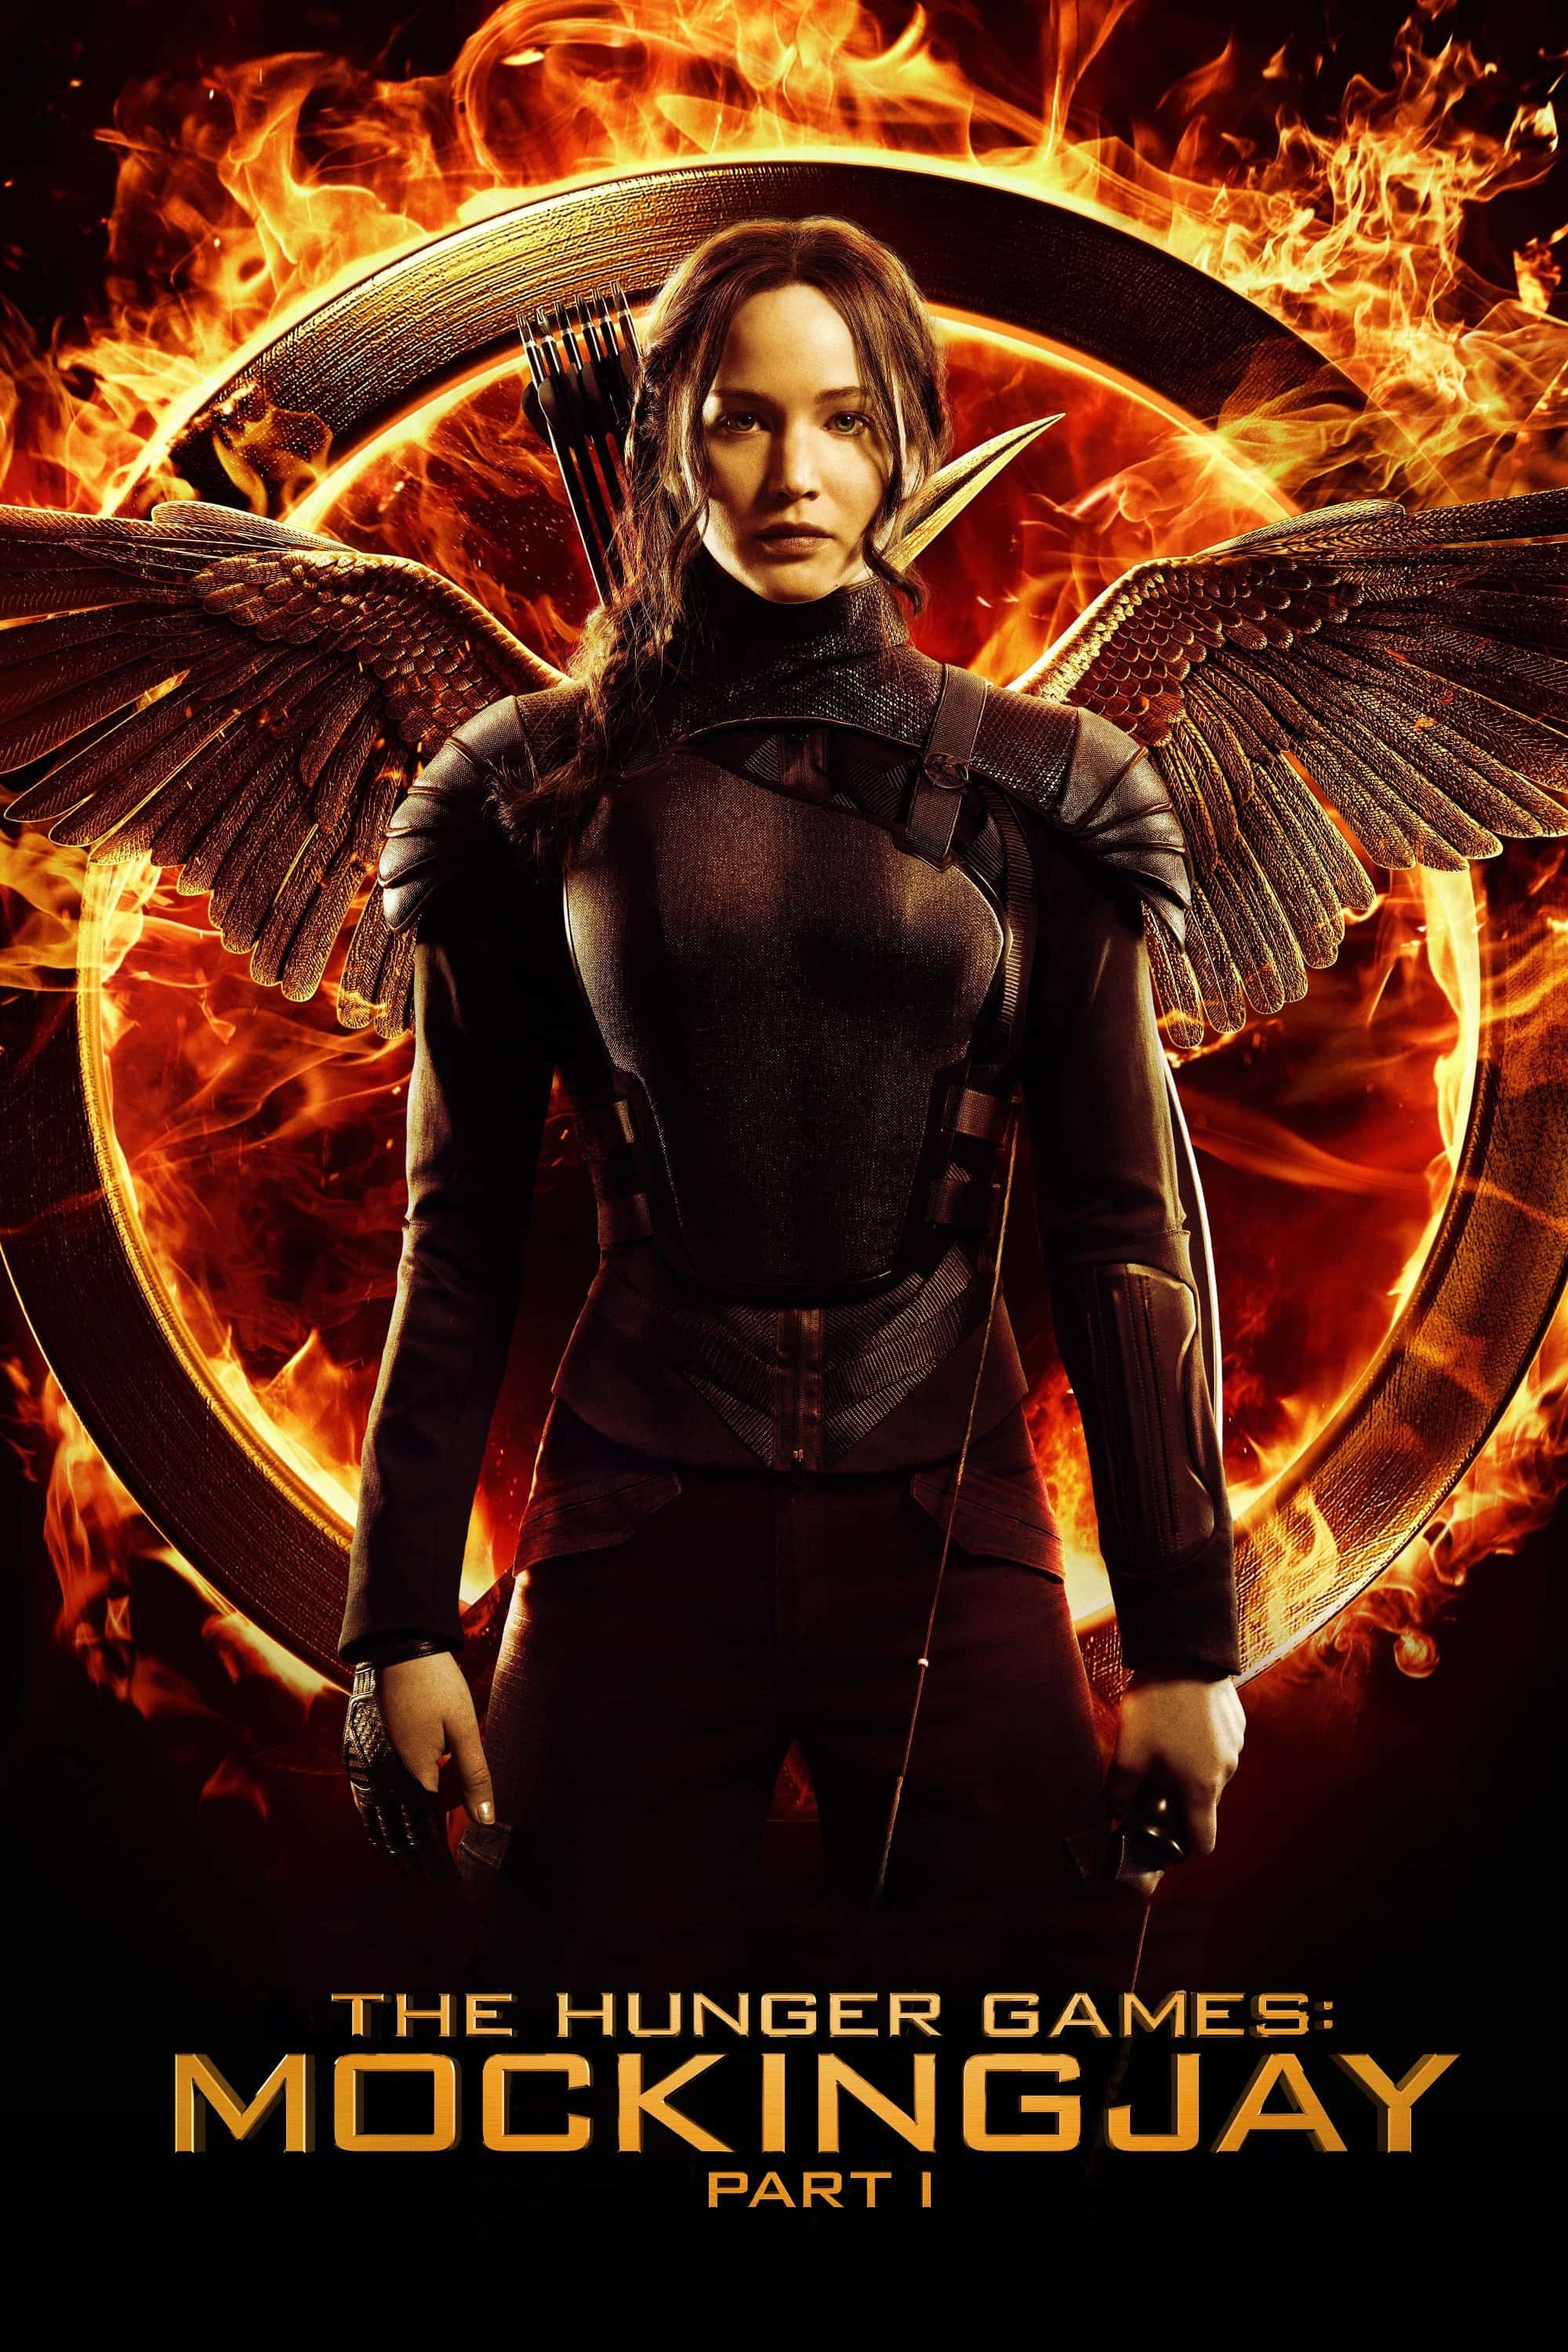 The Hunger Games: Mockingjay – Part 1, 2014